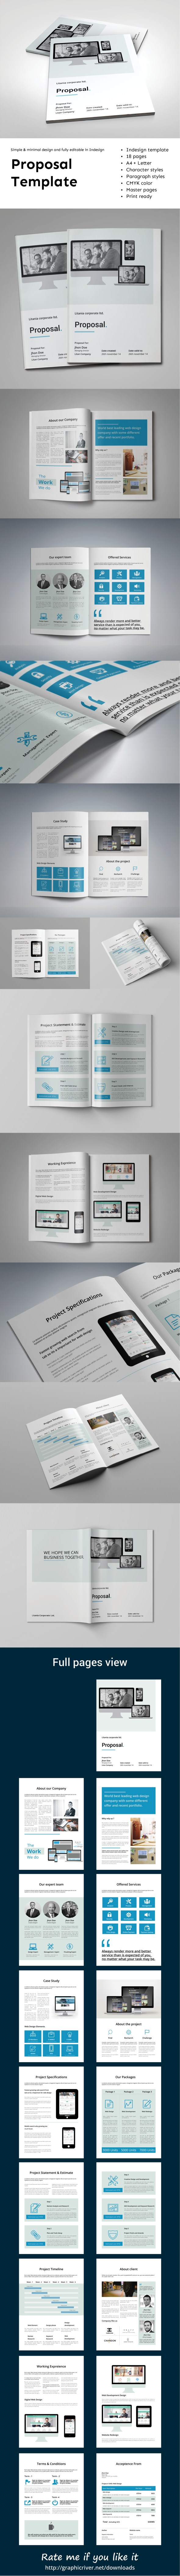 Professional corporate indesign proposal template that can be used professional corporate indesign proposal template that can be used for any type of industry saigontimesfo